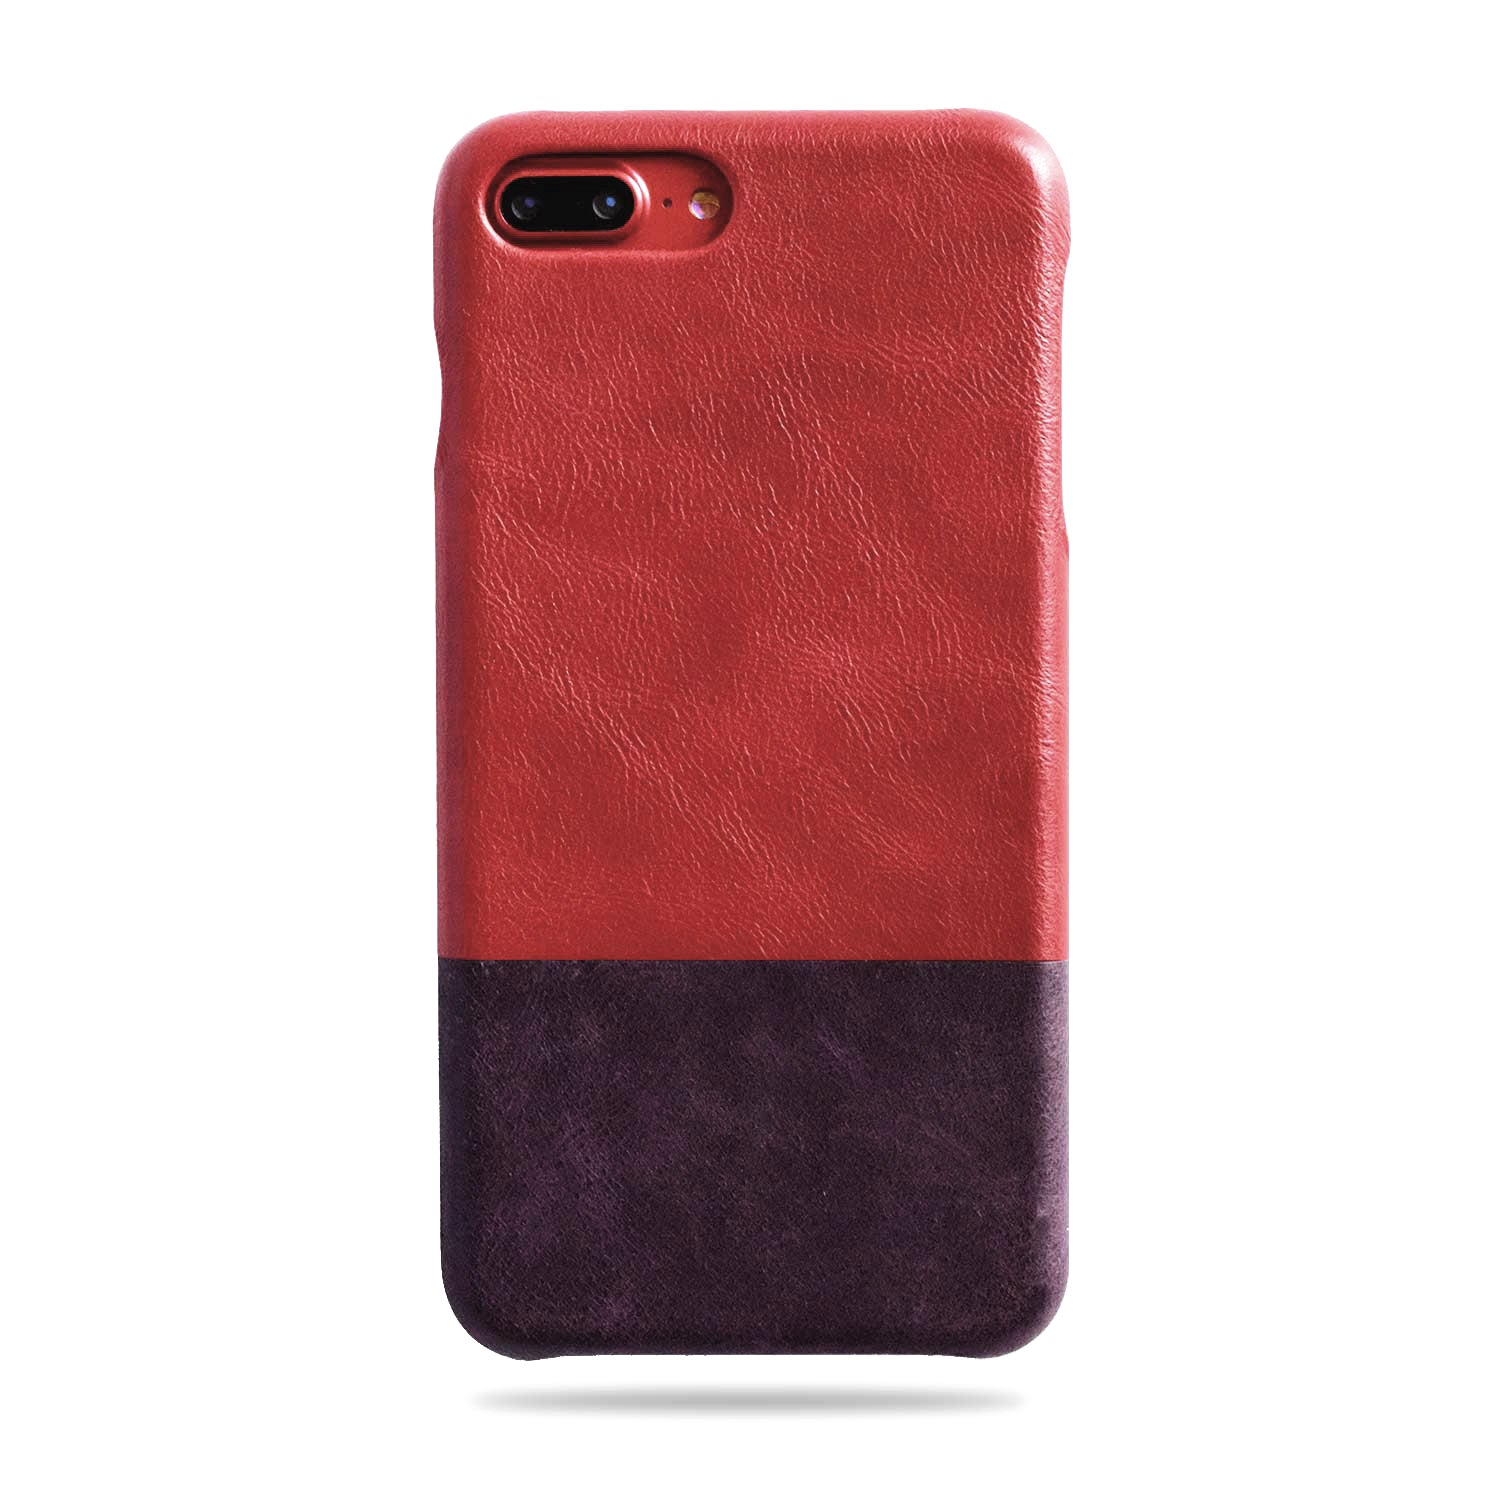 separation shoes 99d4a a10c6 Crimson Red & Wine Purple iPhone 8 Plus / iPhone 7 Plus Leather Case